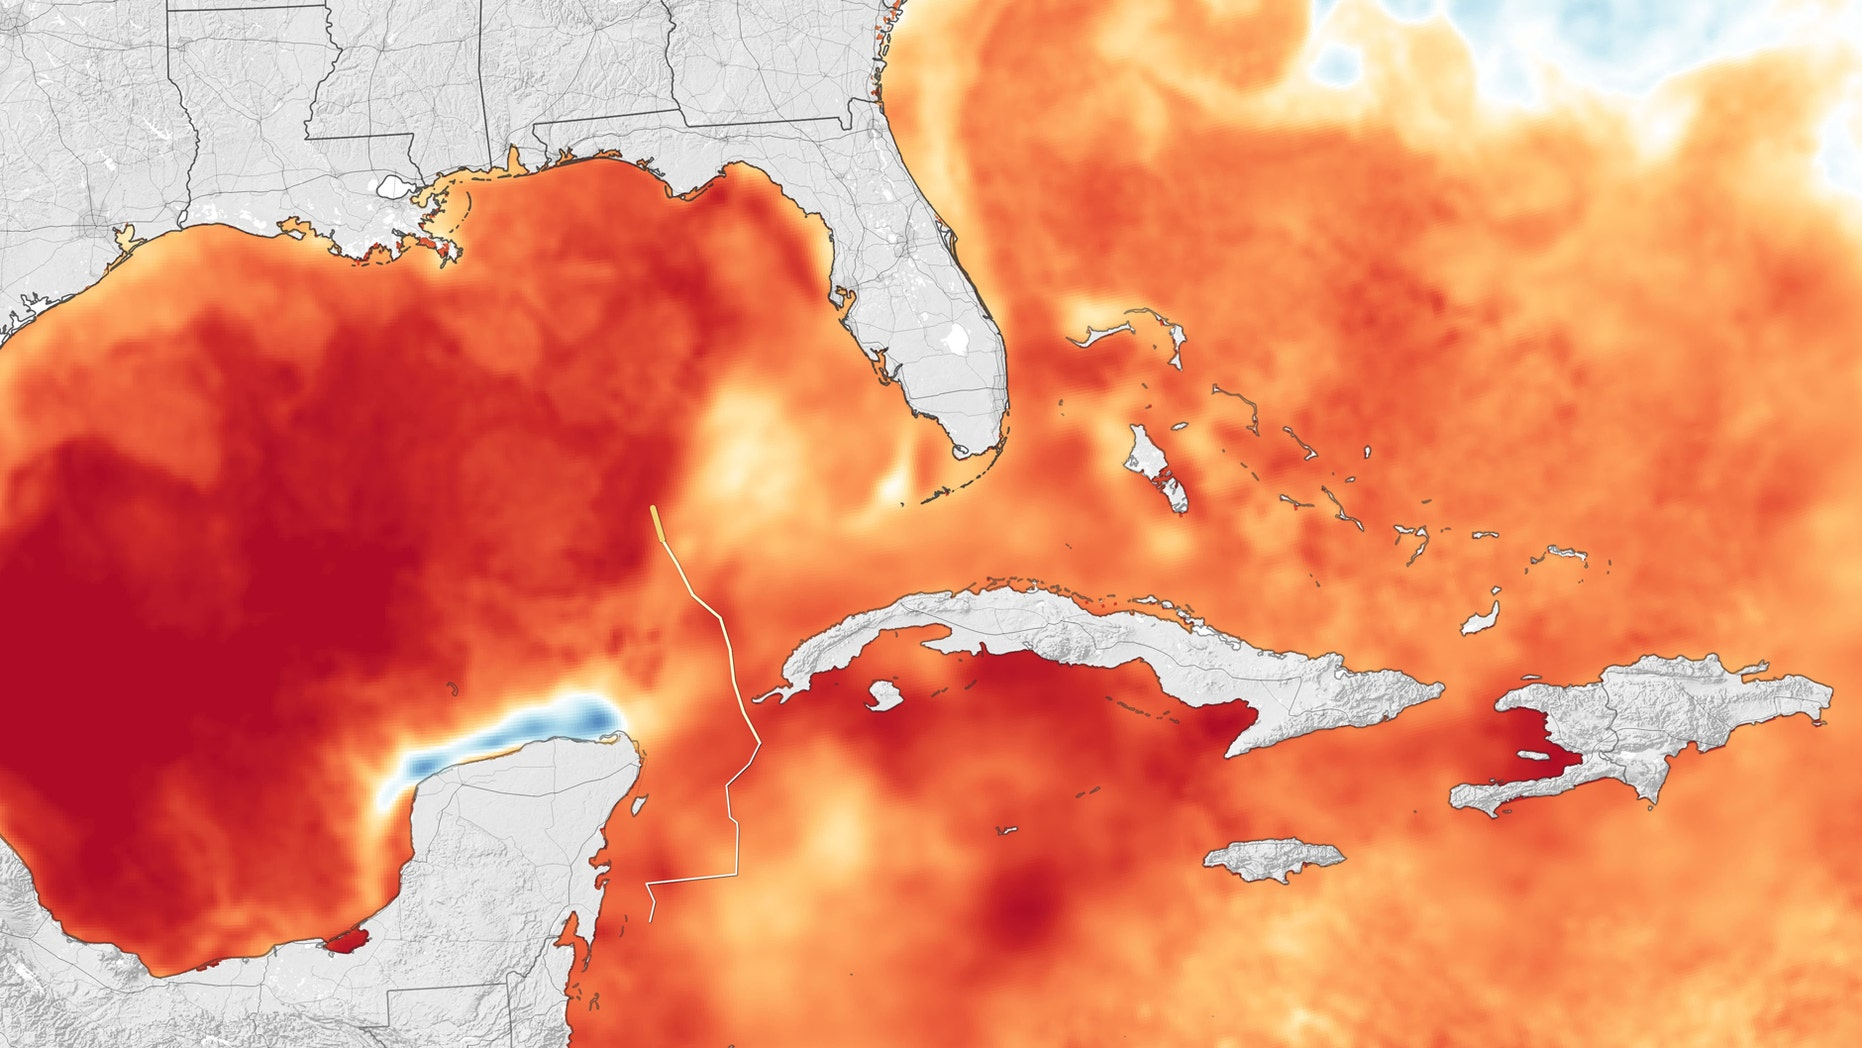 NASA Earth Observatory images by Joshua Stevens and Lauren Dauphin, using sea surface temperature data from Coral Reef Watch, storm track information from Weather Underground and MODIS data from NASA EOSDIS/LANCE and GIBS/Worldview.